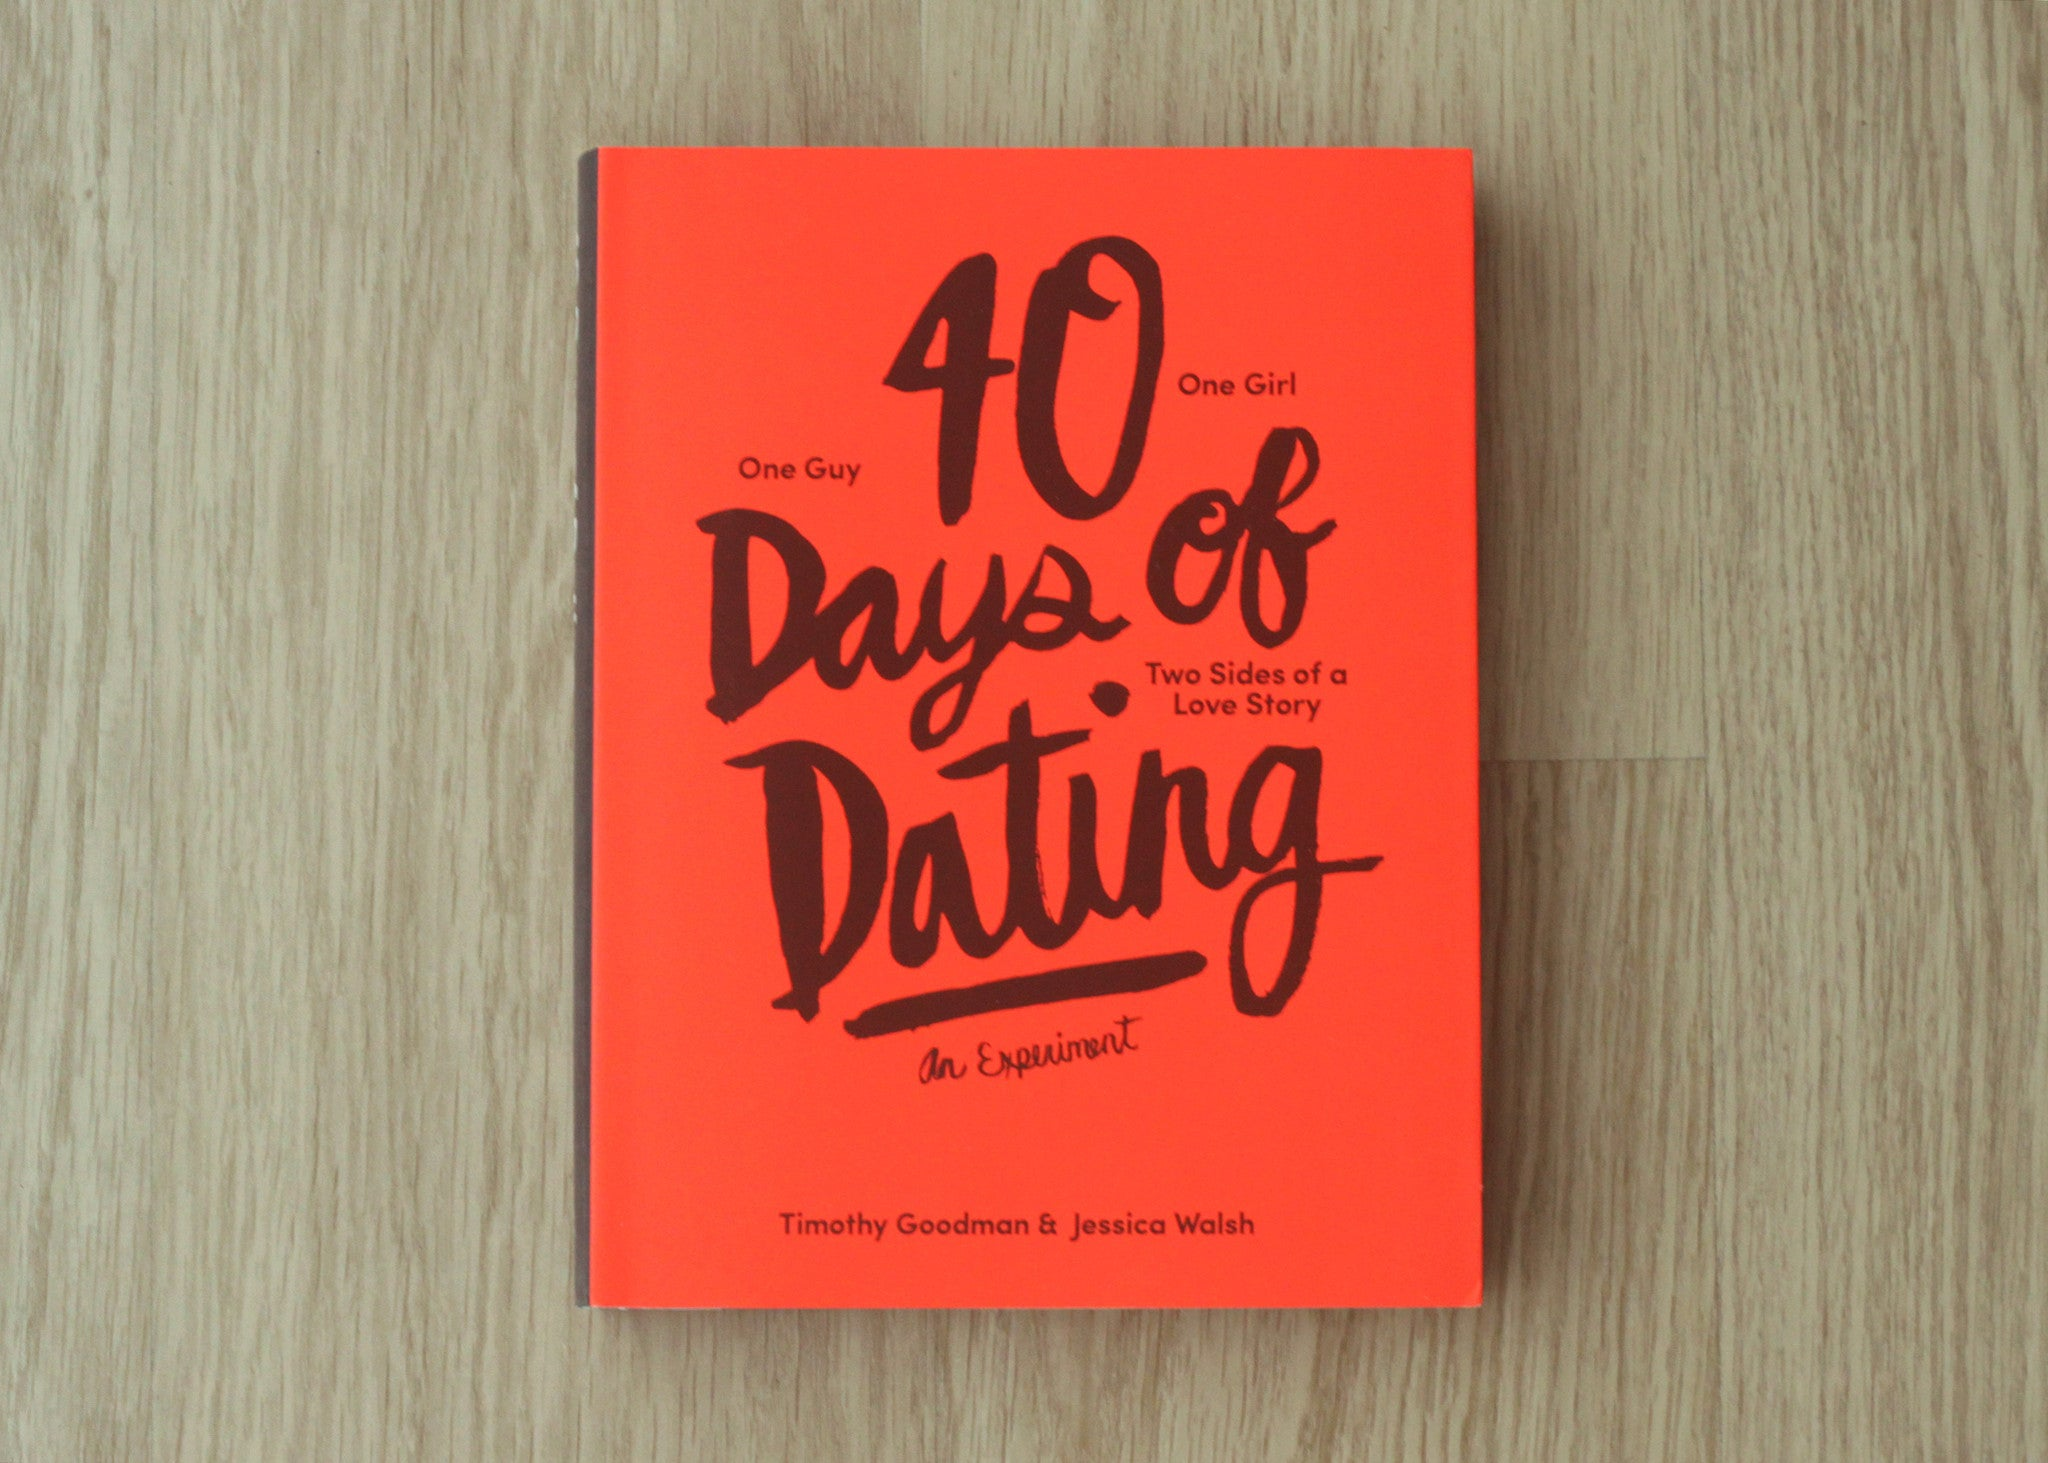 40 Years of Dating: An Experiment